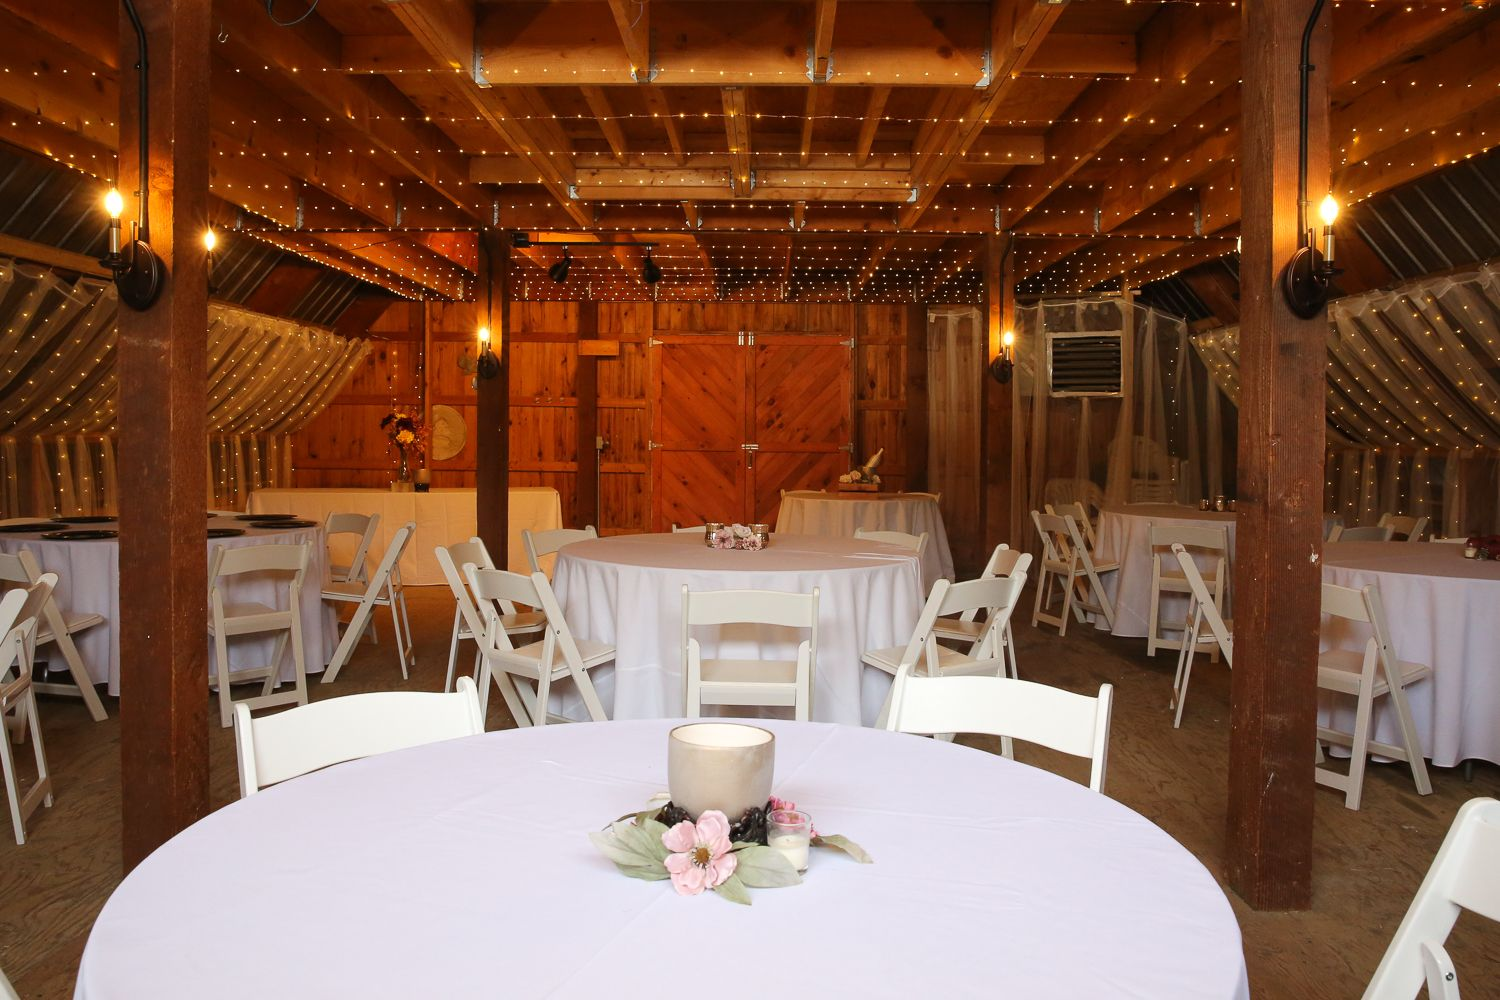 GuestHouseforWedding TinkhamHill is the best venue to ...